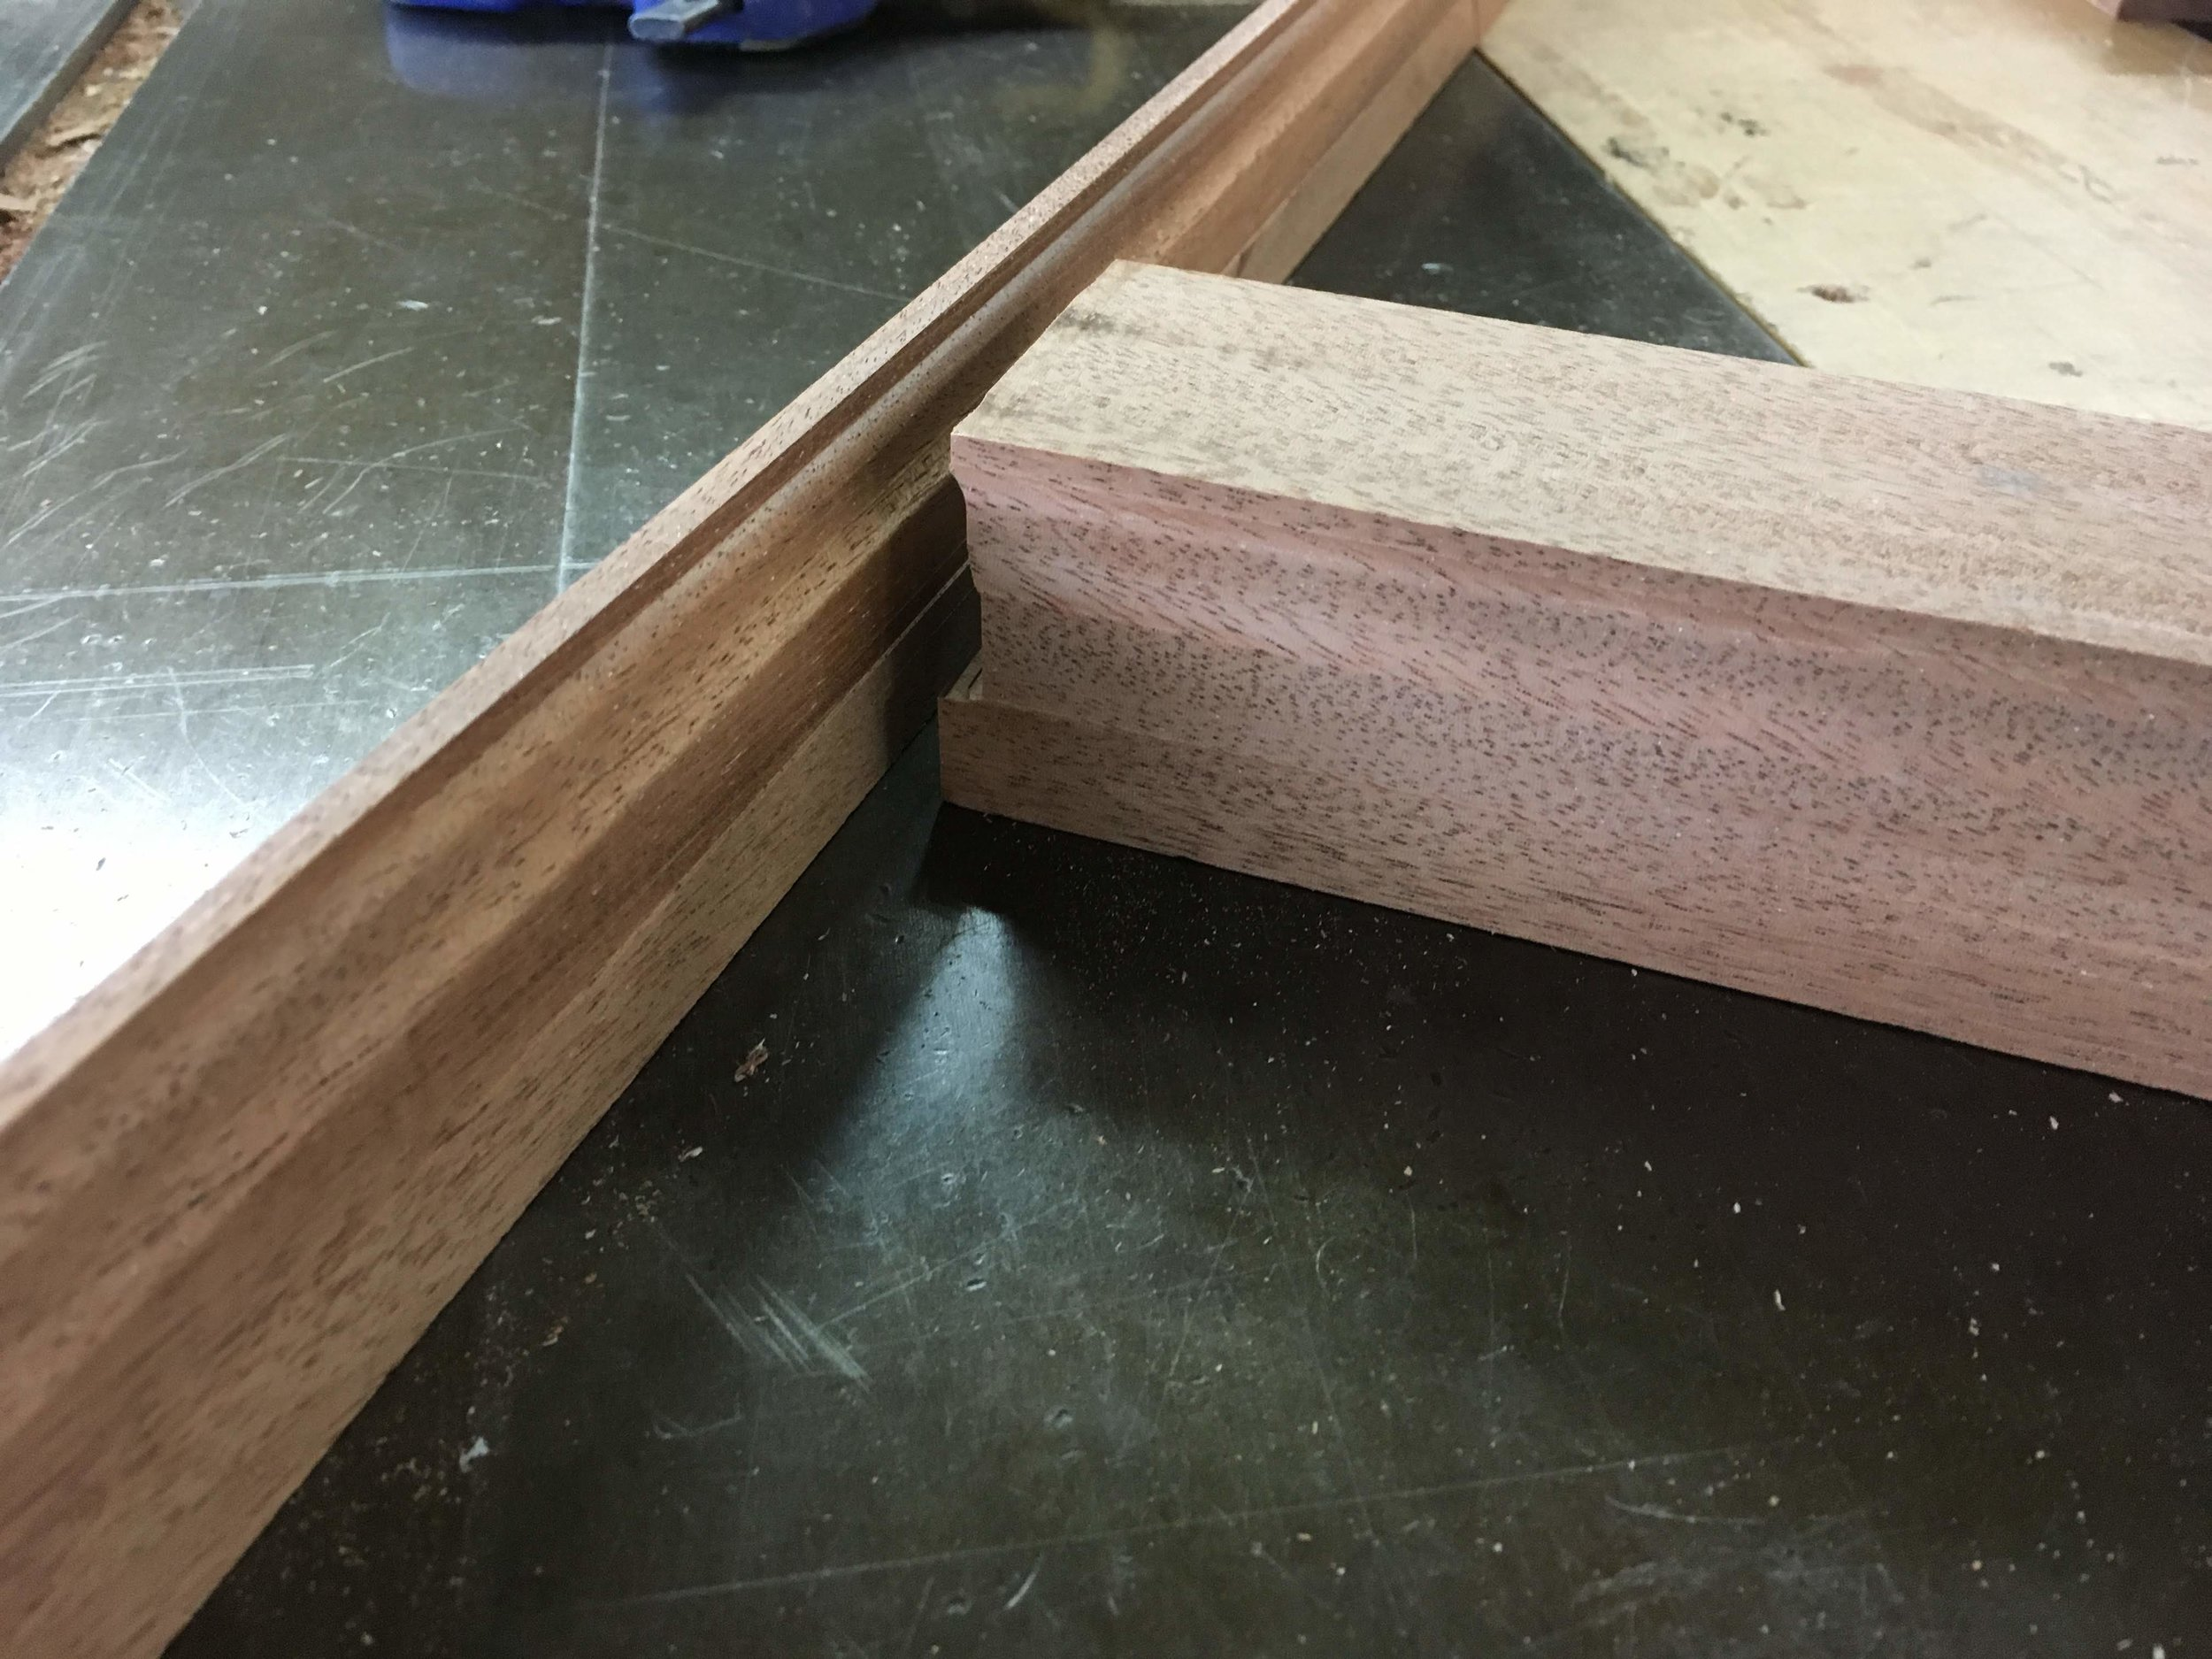 Here we have the positive and negative profiles cut by two different knives. This cope fit is the essence of traditional millwork.